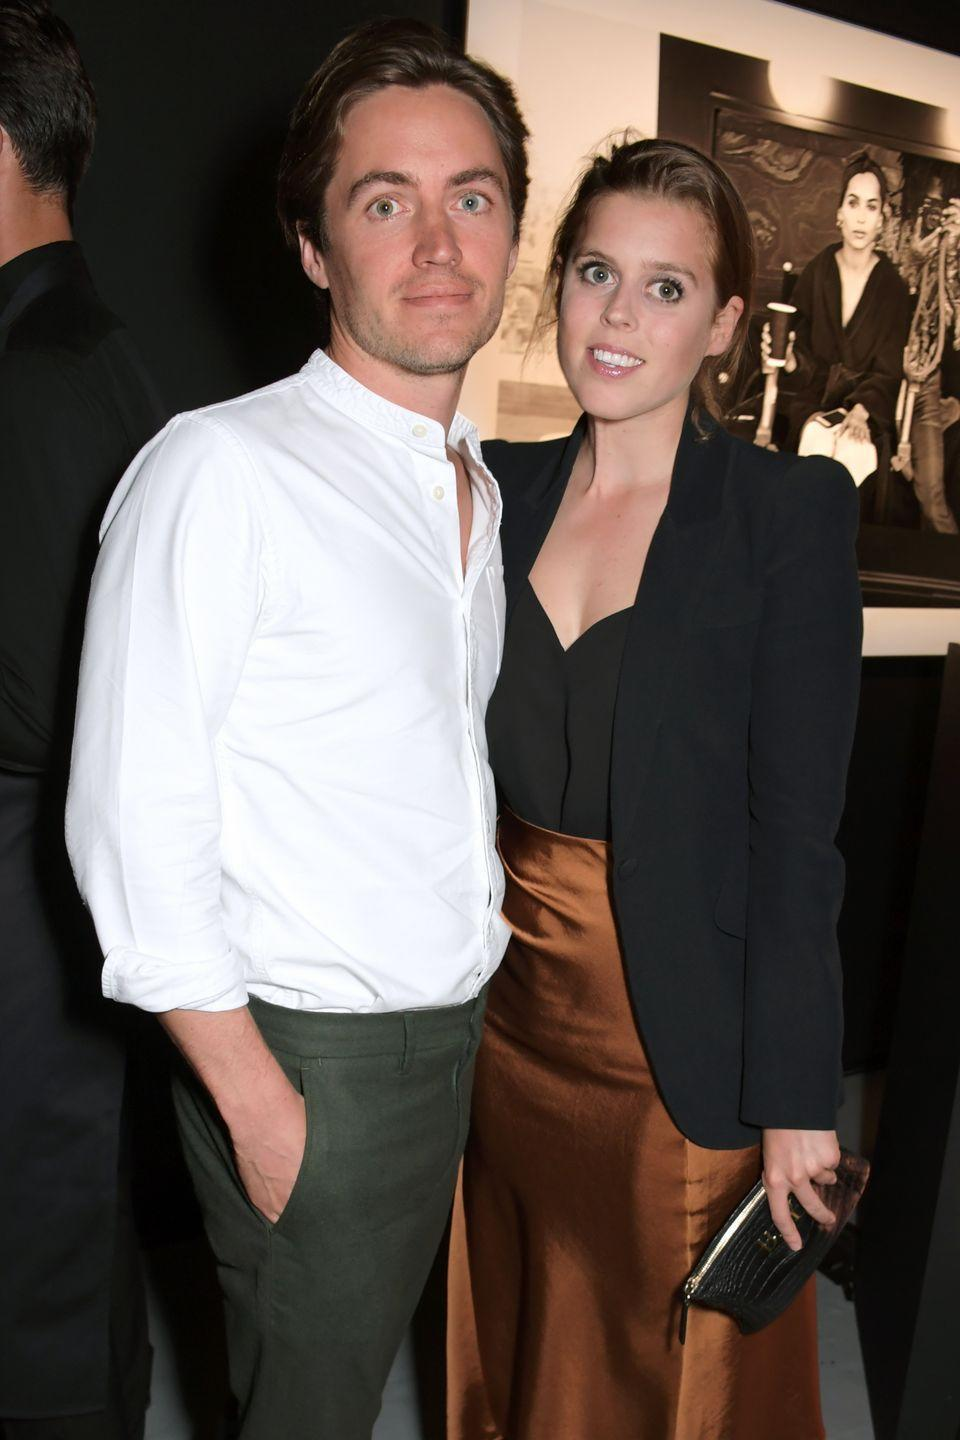 """<p>Much like her sister's wedding, when Princess Beatrice walks down the aisle with <a href=""""https://www.harpersbazaar.com/celebrity/latest/a25235705/who-is-princess-beatrice-boyfriend-edoardo-mapelli-mozzi/"""" rel=""""nofollow noopener"""" target=""""_blank"""" data-ylk=""""slk:Edoardo Mapelli Mozzi"""" class=""""link rapid-noclick-resp"""">Edoardo Mapelli Mozzi</a>, the BBC won't be screening it. <a href=""""https://www.mirror.co.uk/news/uk-news/princess-beatrices-royal-wedding-wont-21214045"""" rel=""""nofollow noopener"""" target=""""_blank"""" data-ylk=""""slk:The Mirror"""" class=""""link rapid-noclick-resp""""><em>The Mirror</em></a> reported that the BBC would not broadcast the whole wedding, instead offering news coverage of the event at intervals throughout the day. It's unclear whether ITV will nab the rights instead.</p>"""